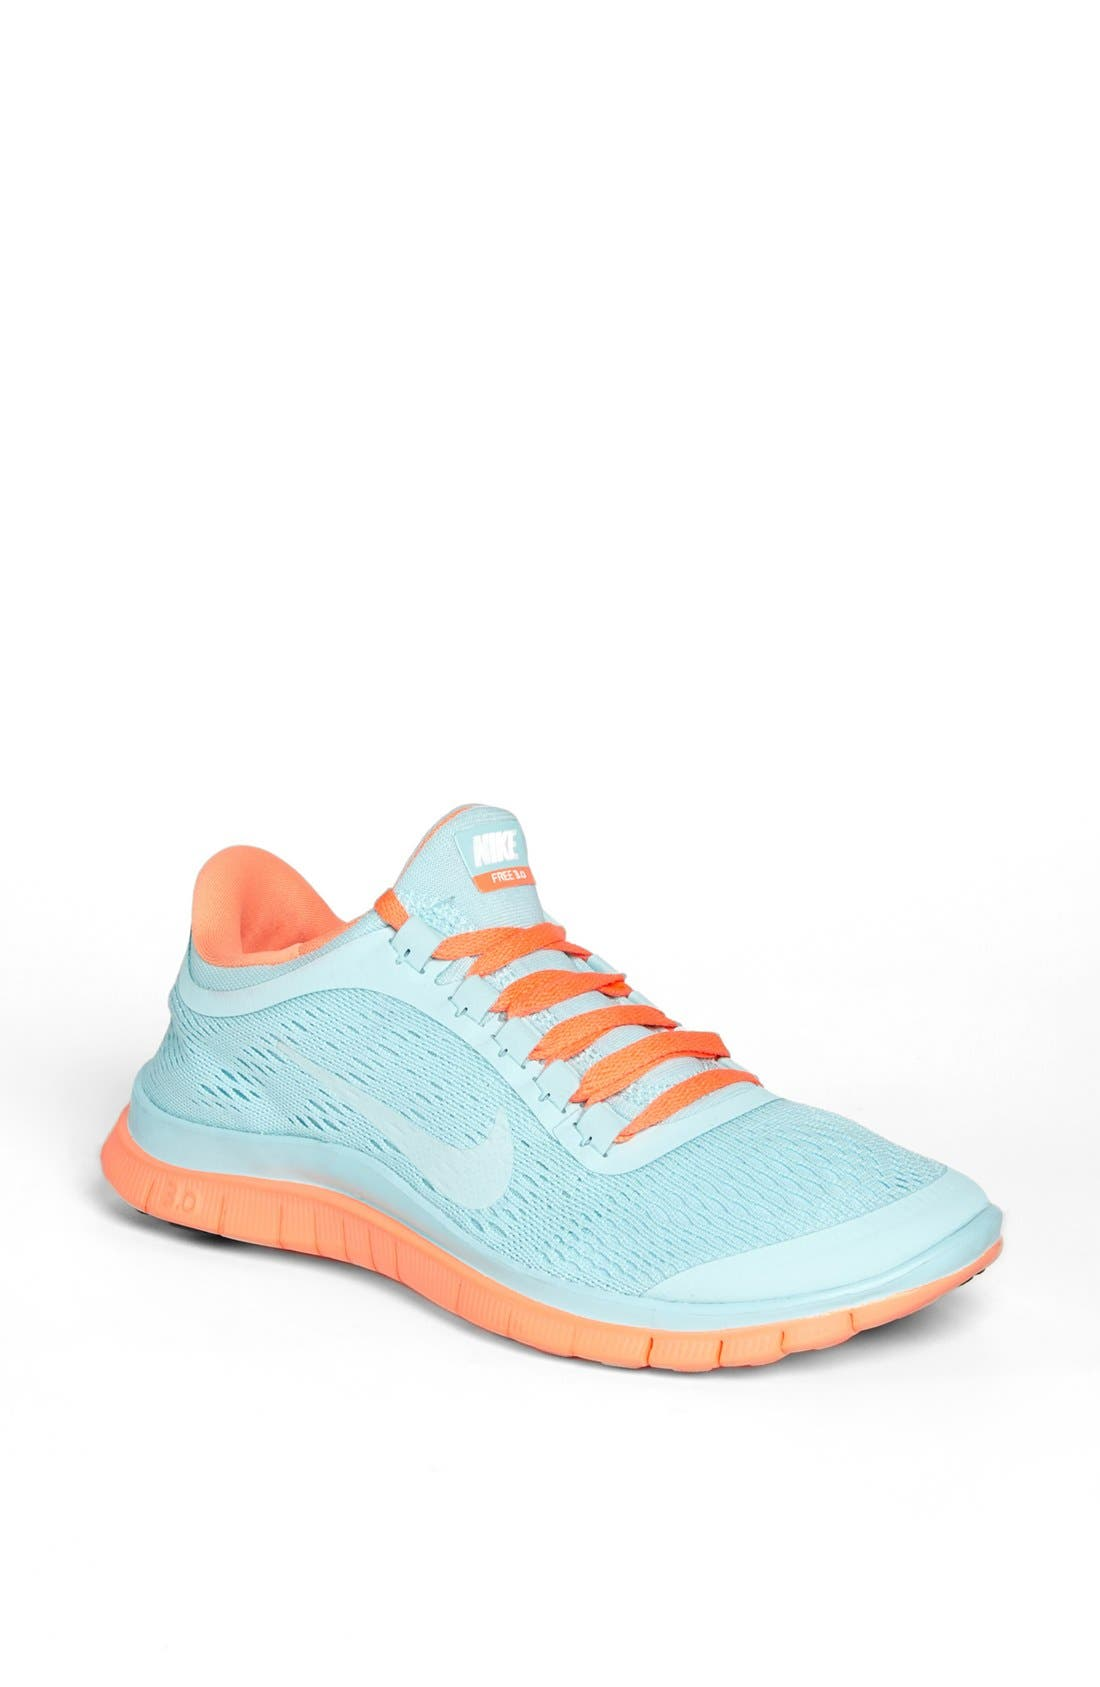 Alternate Image 1 Selected - Nike 'Free 3.0 v5' Running Shoe (Women)